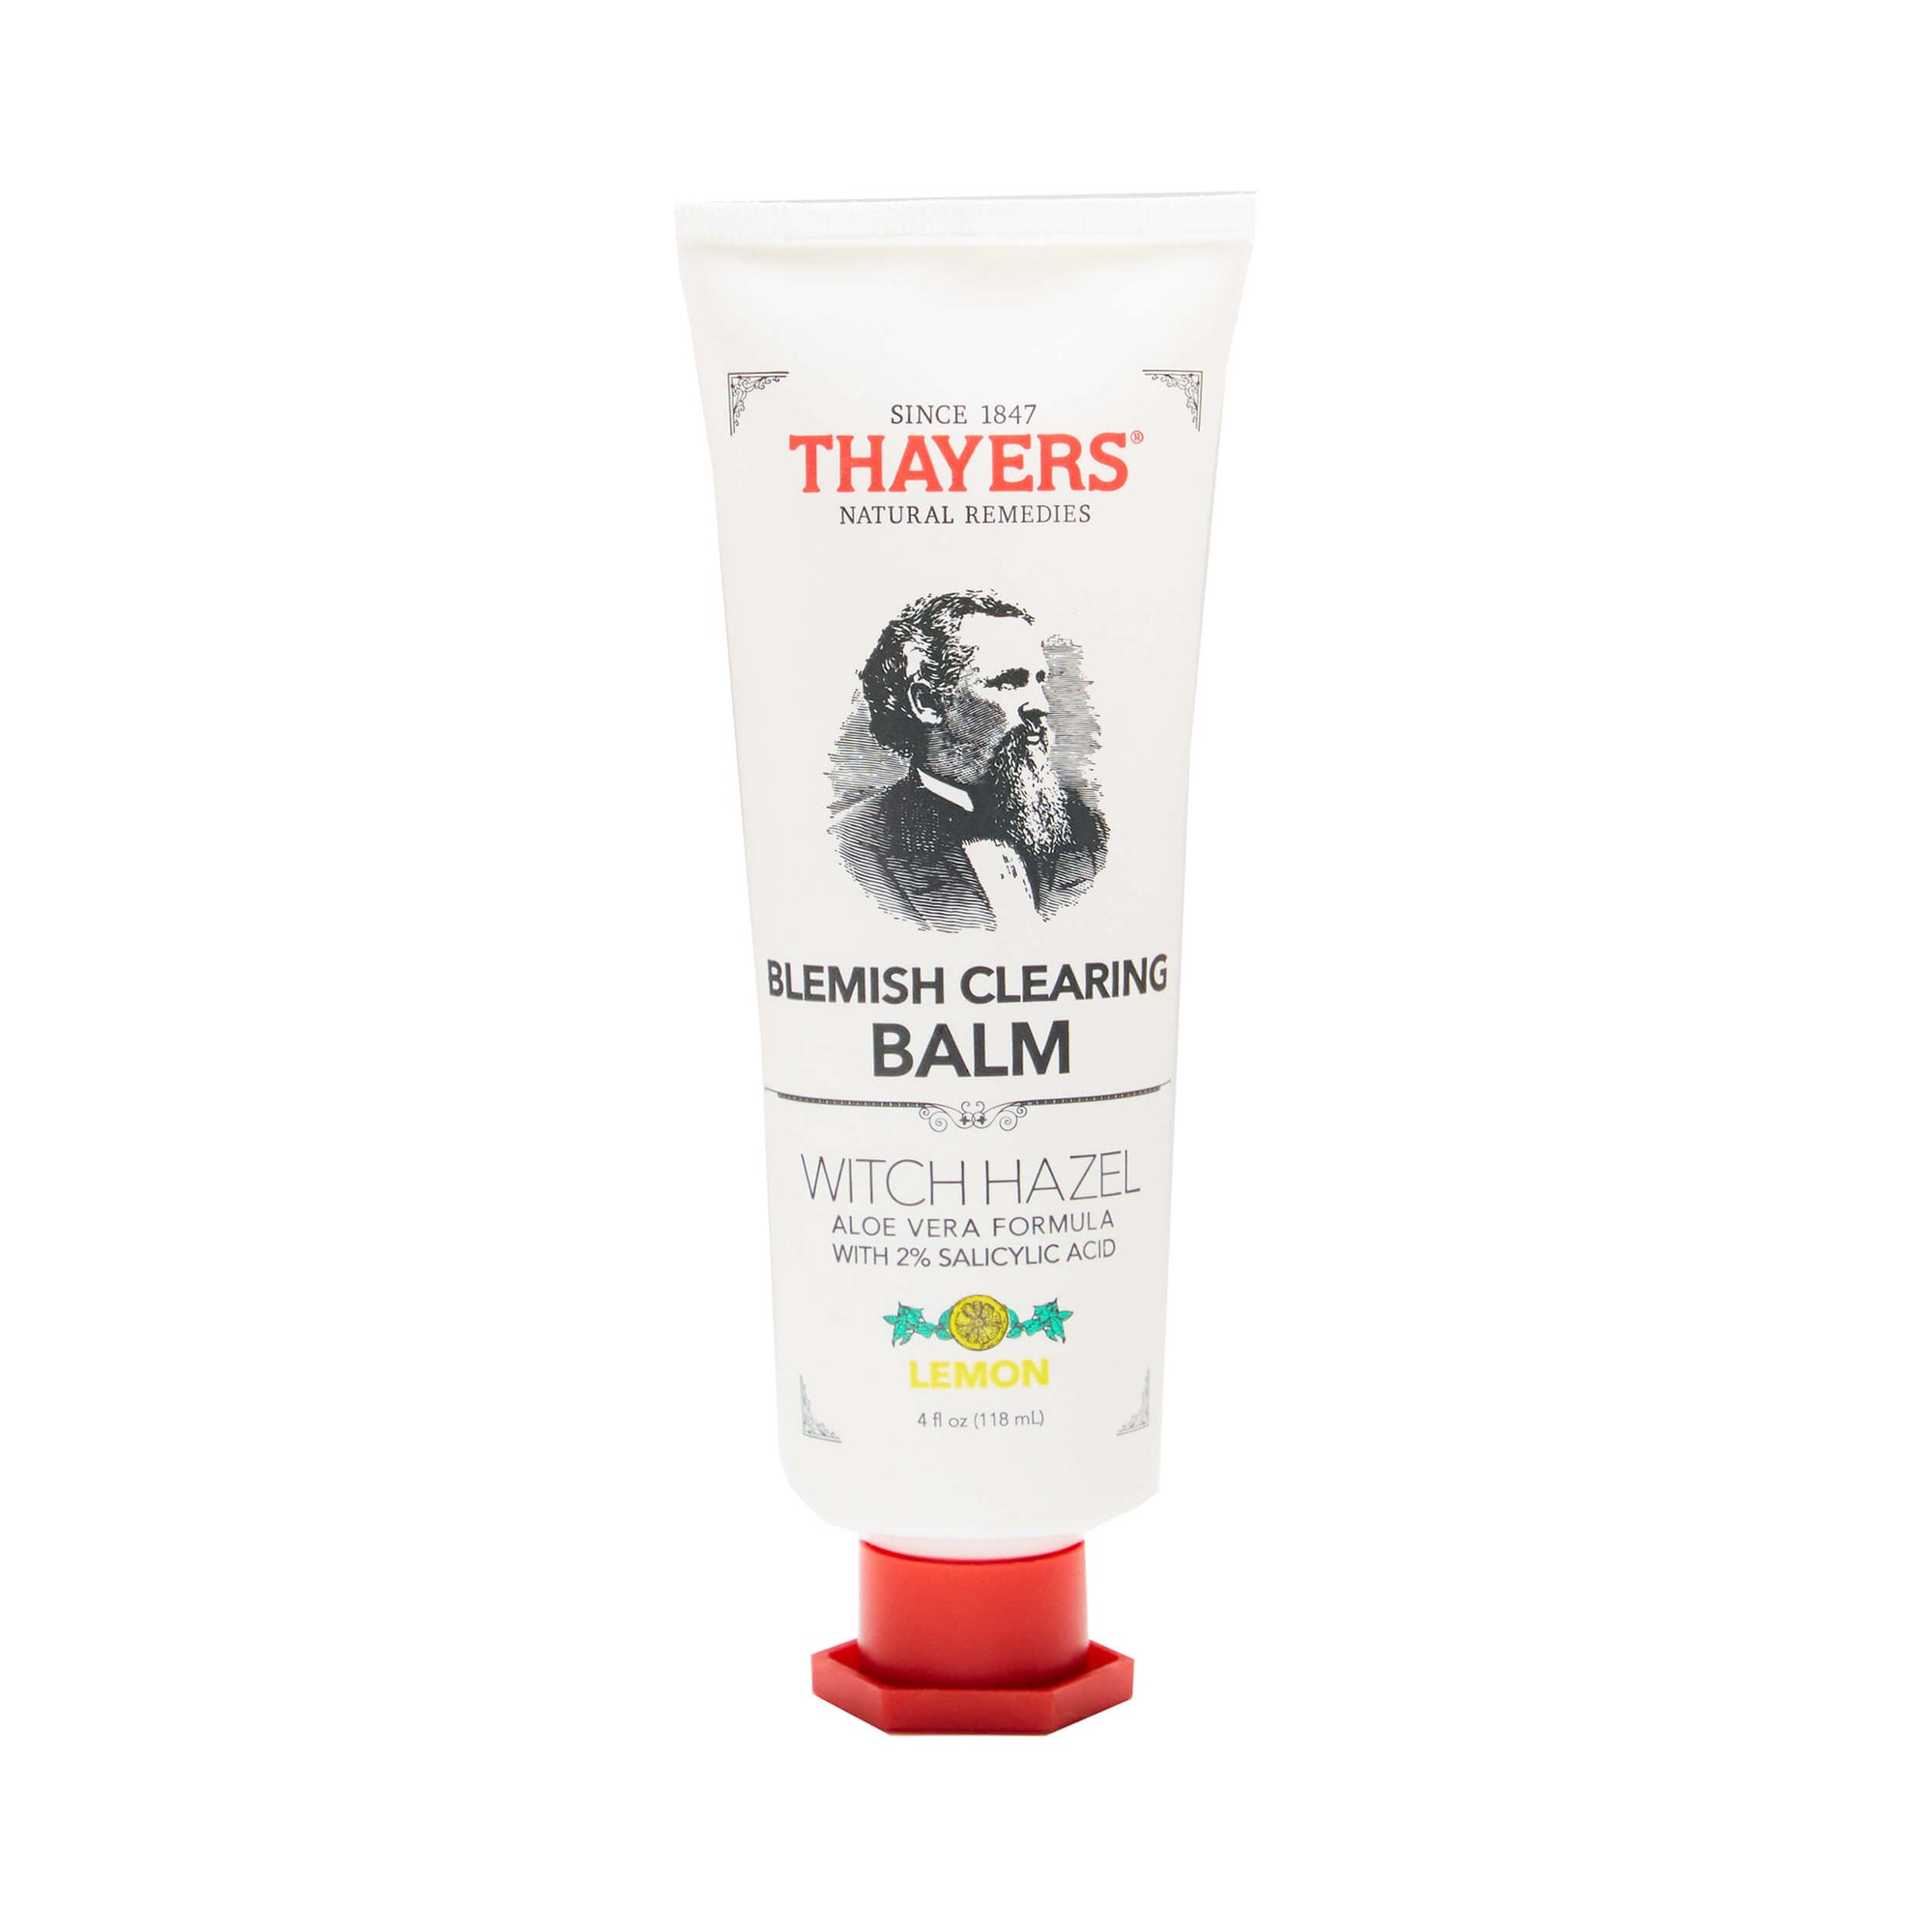 Thayers Blemish Clearing Balm 118 mL